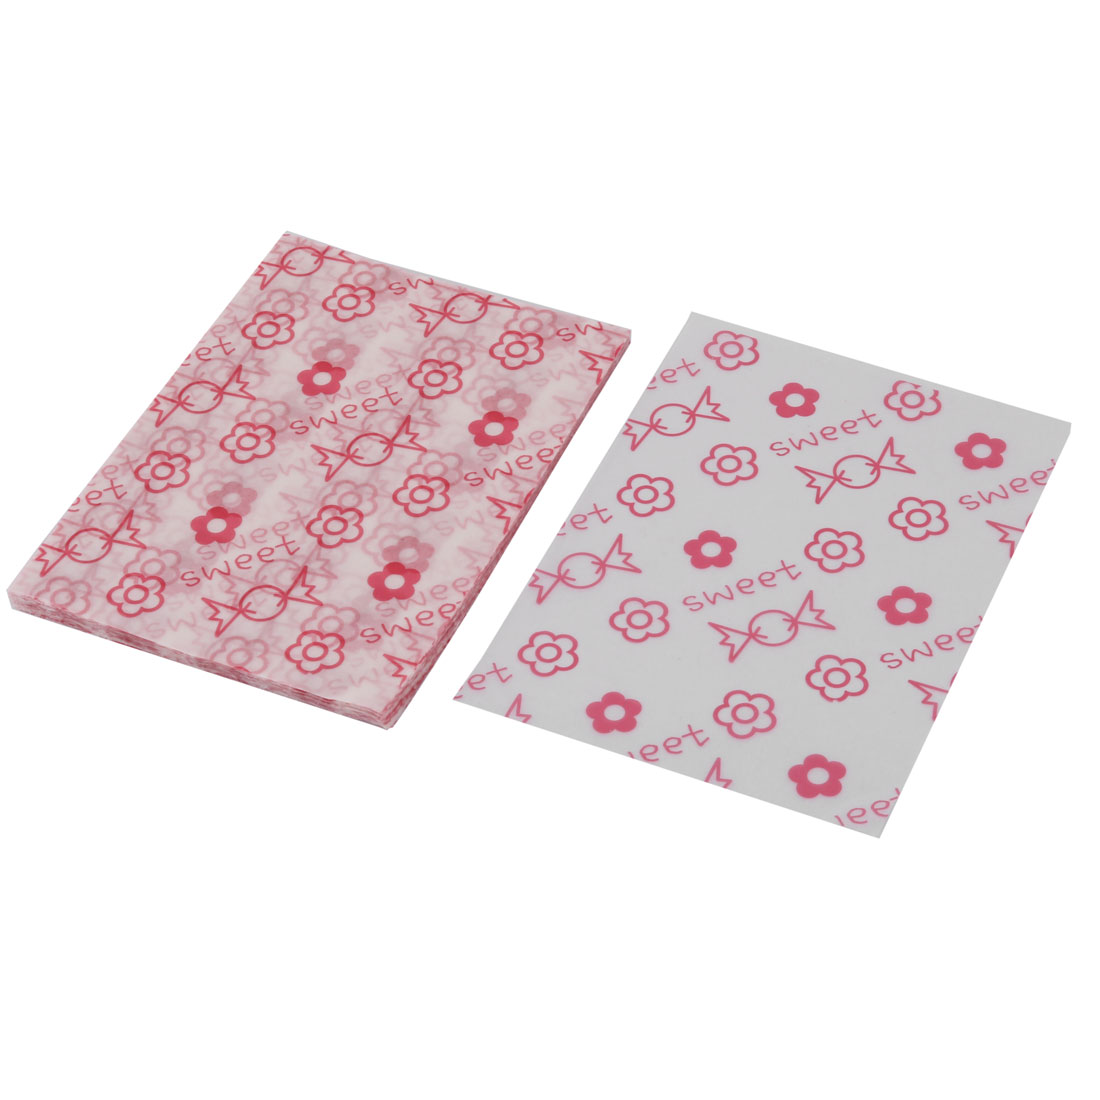 Birthday Flower Pattern Candy Sugar Chocolate Packaging Wrapping Paper 100pcs